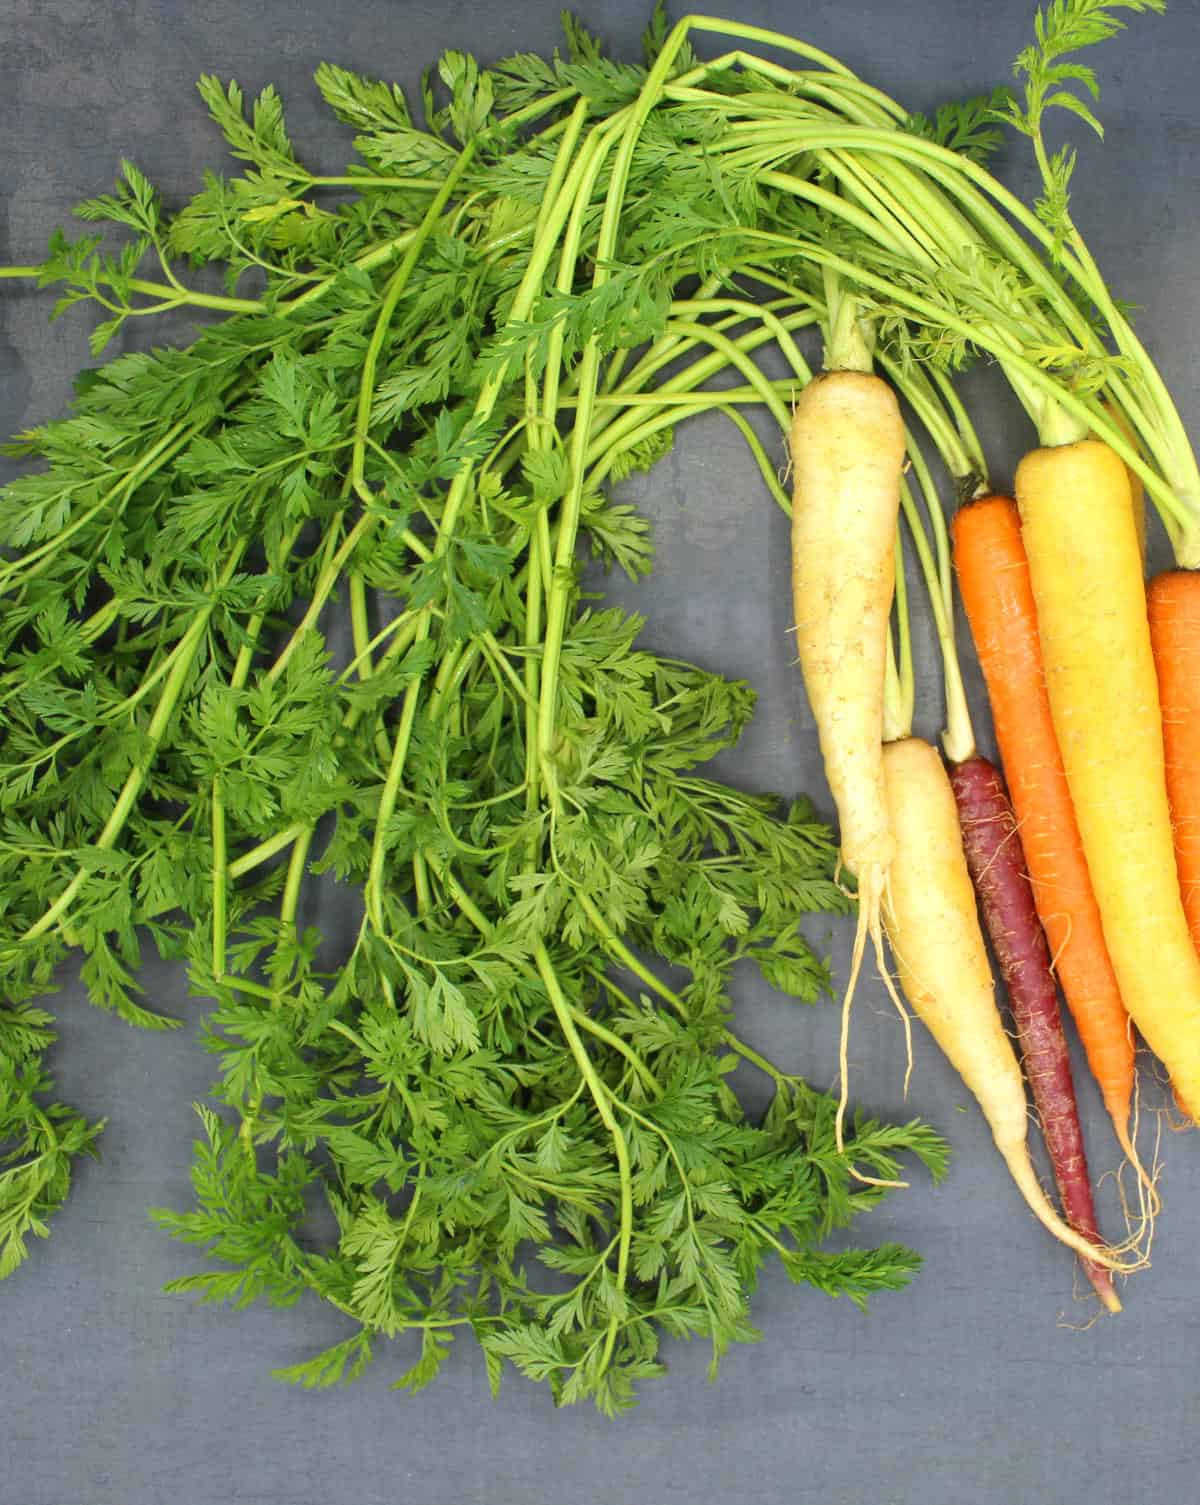 Multicolored carrots with carrot greens on a gray background